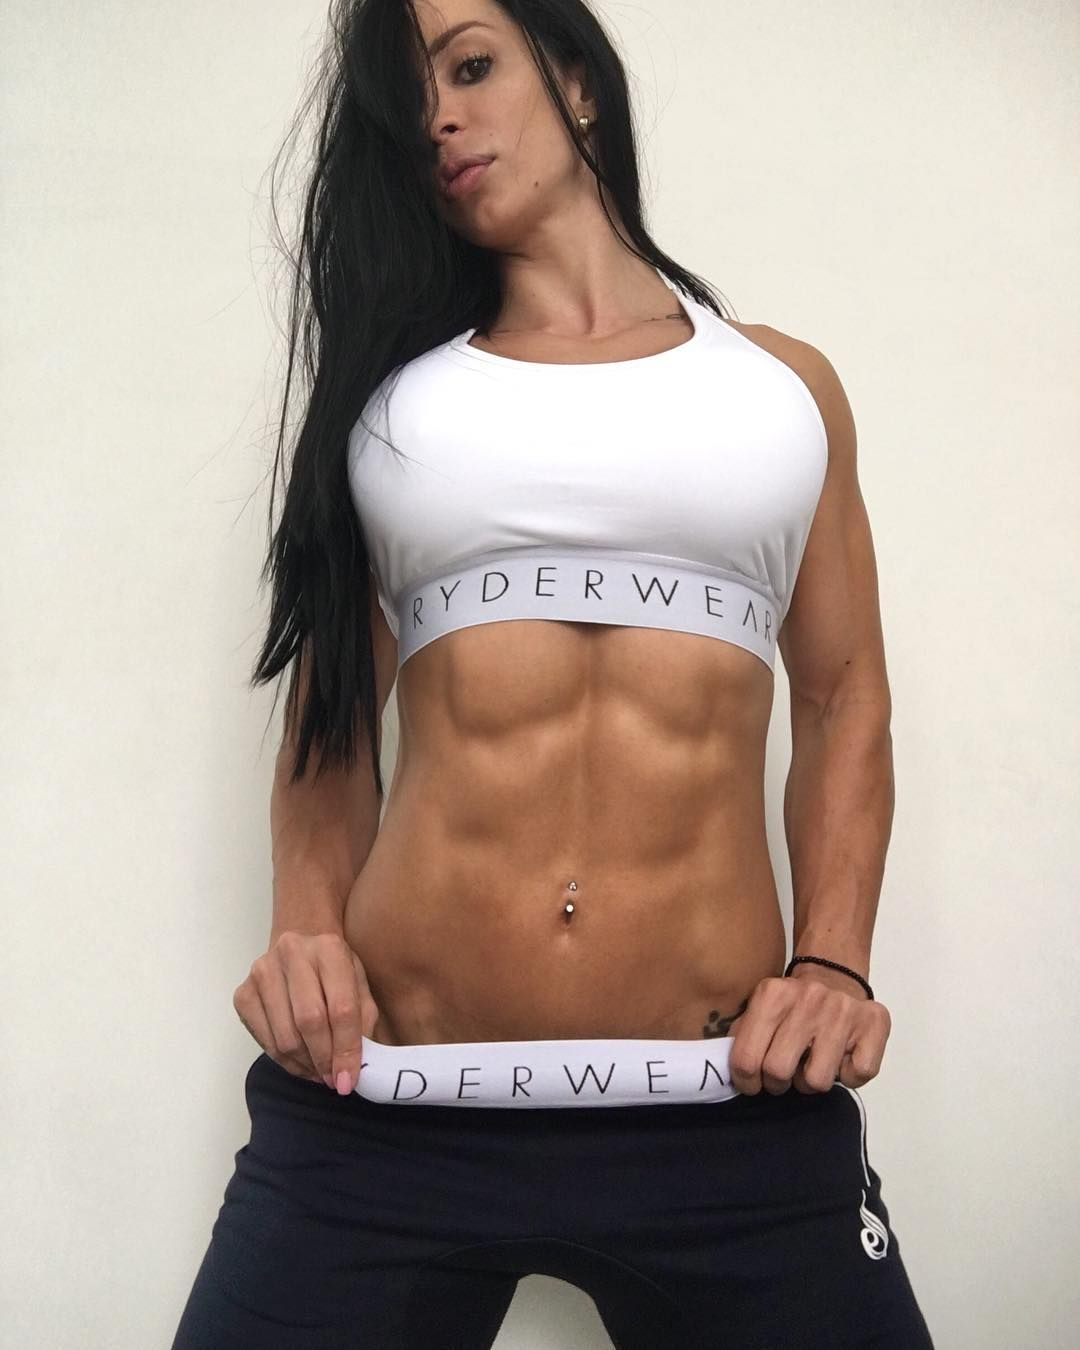 Ana Cozar Nude ana cozar | fitness models, ripped girls, fit women